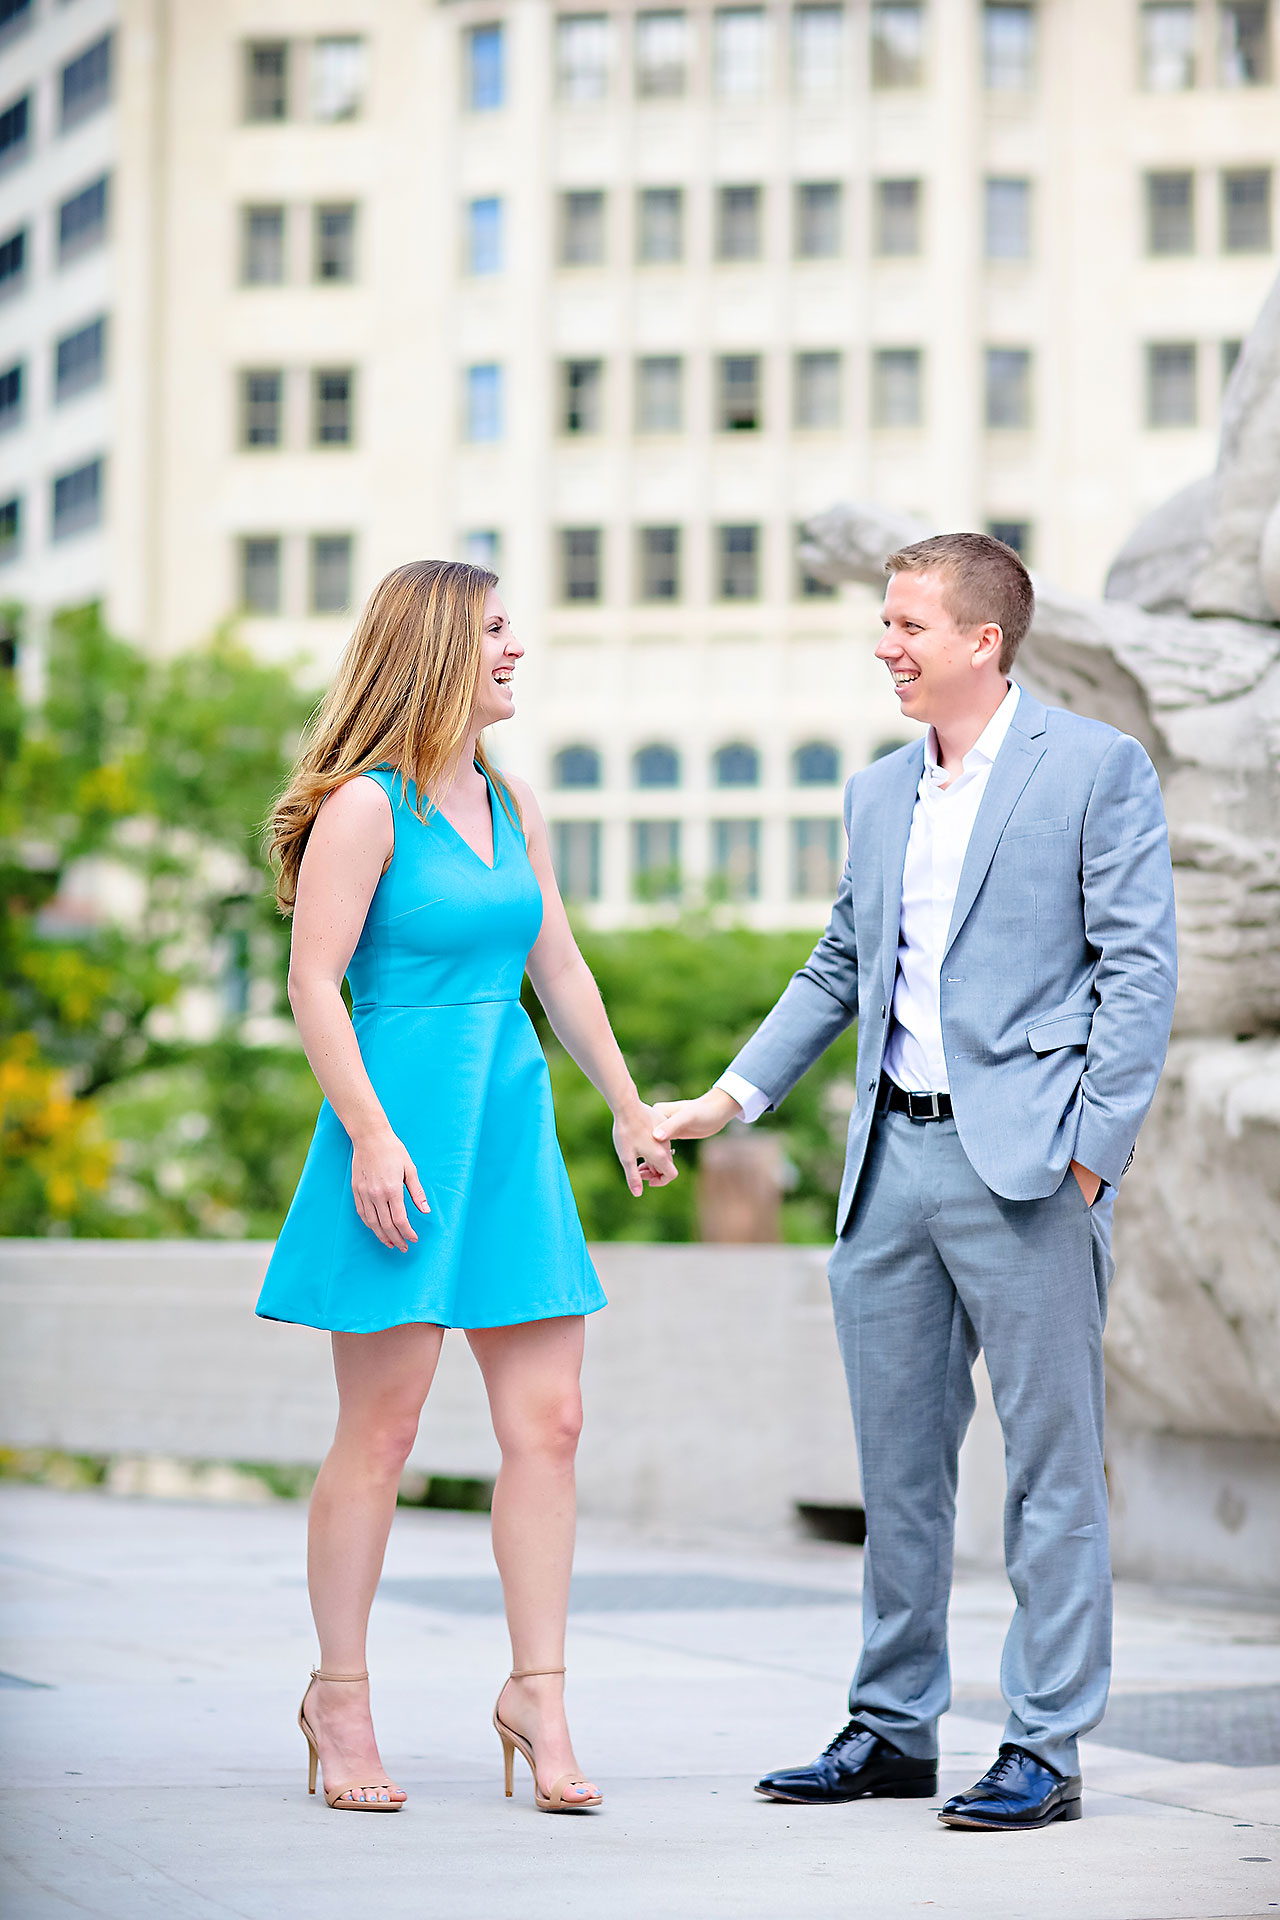 Chelsea Jeff Downtown Indy Engagement Session 116